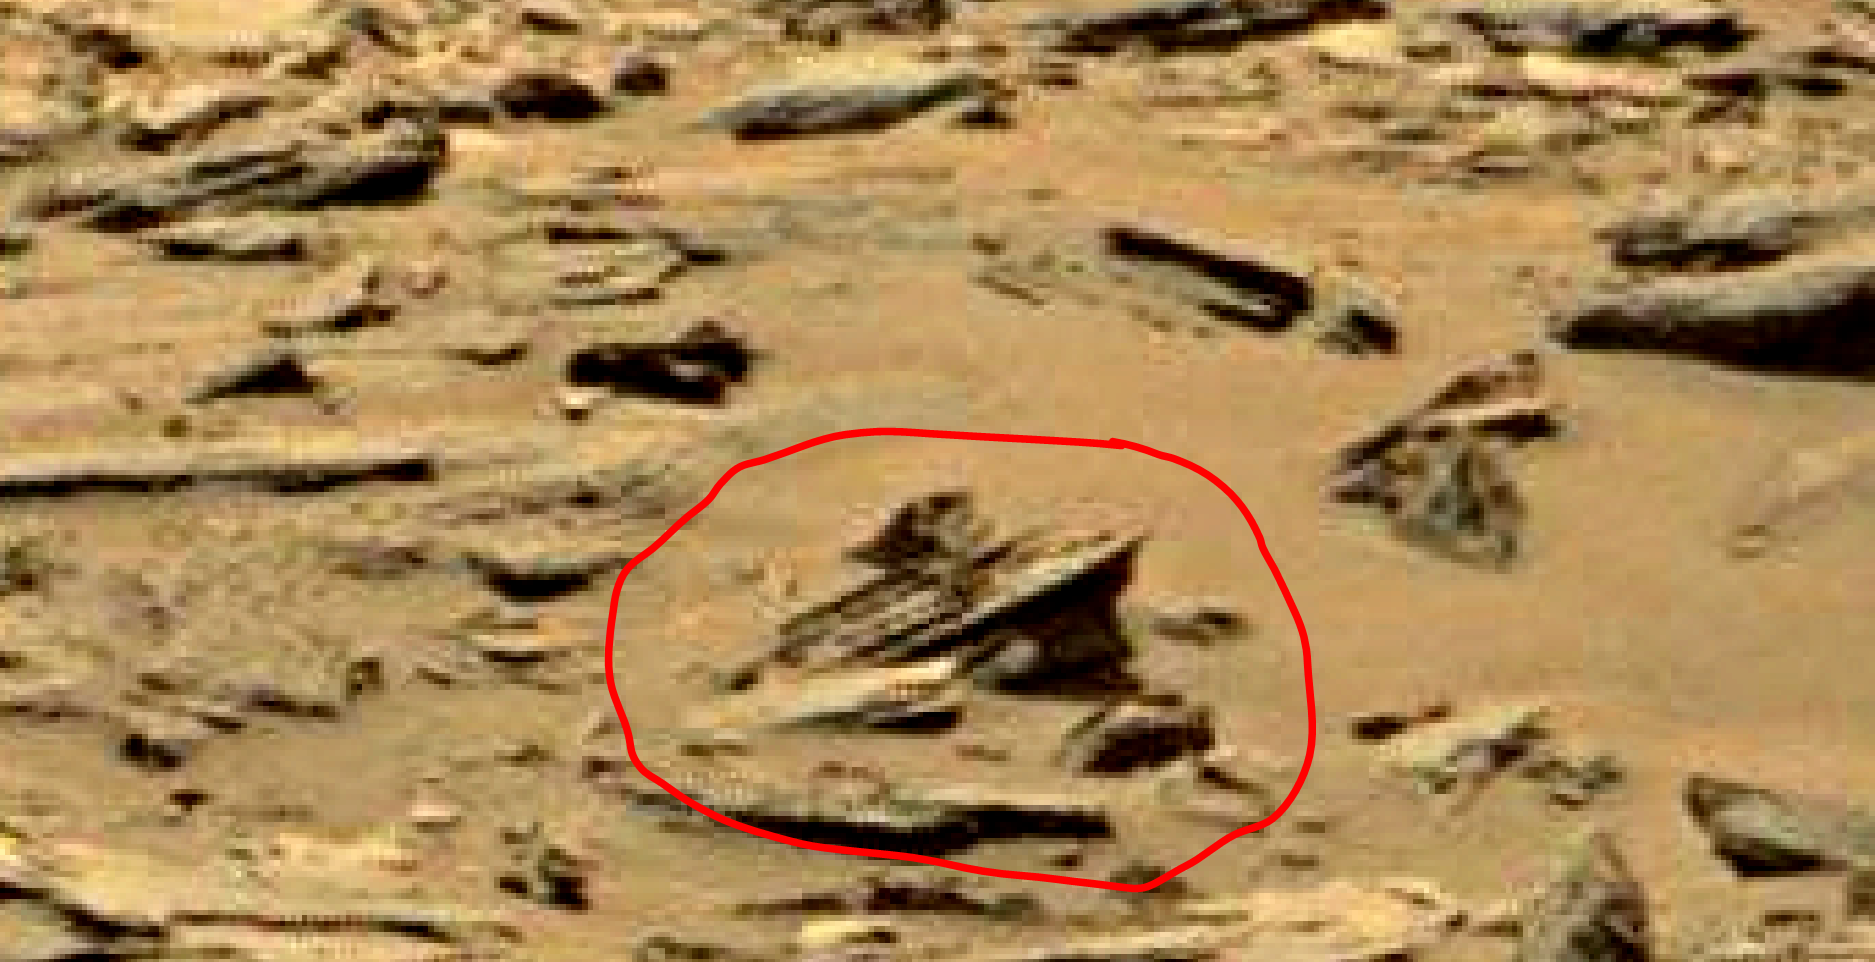 mars sol 1353 anomaly-artifacts 4a was life on mars